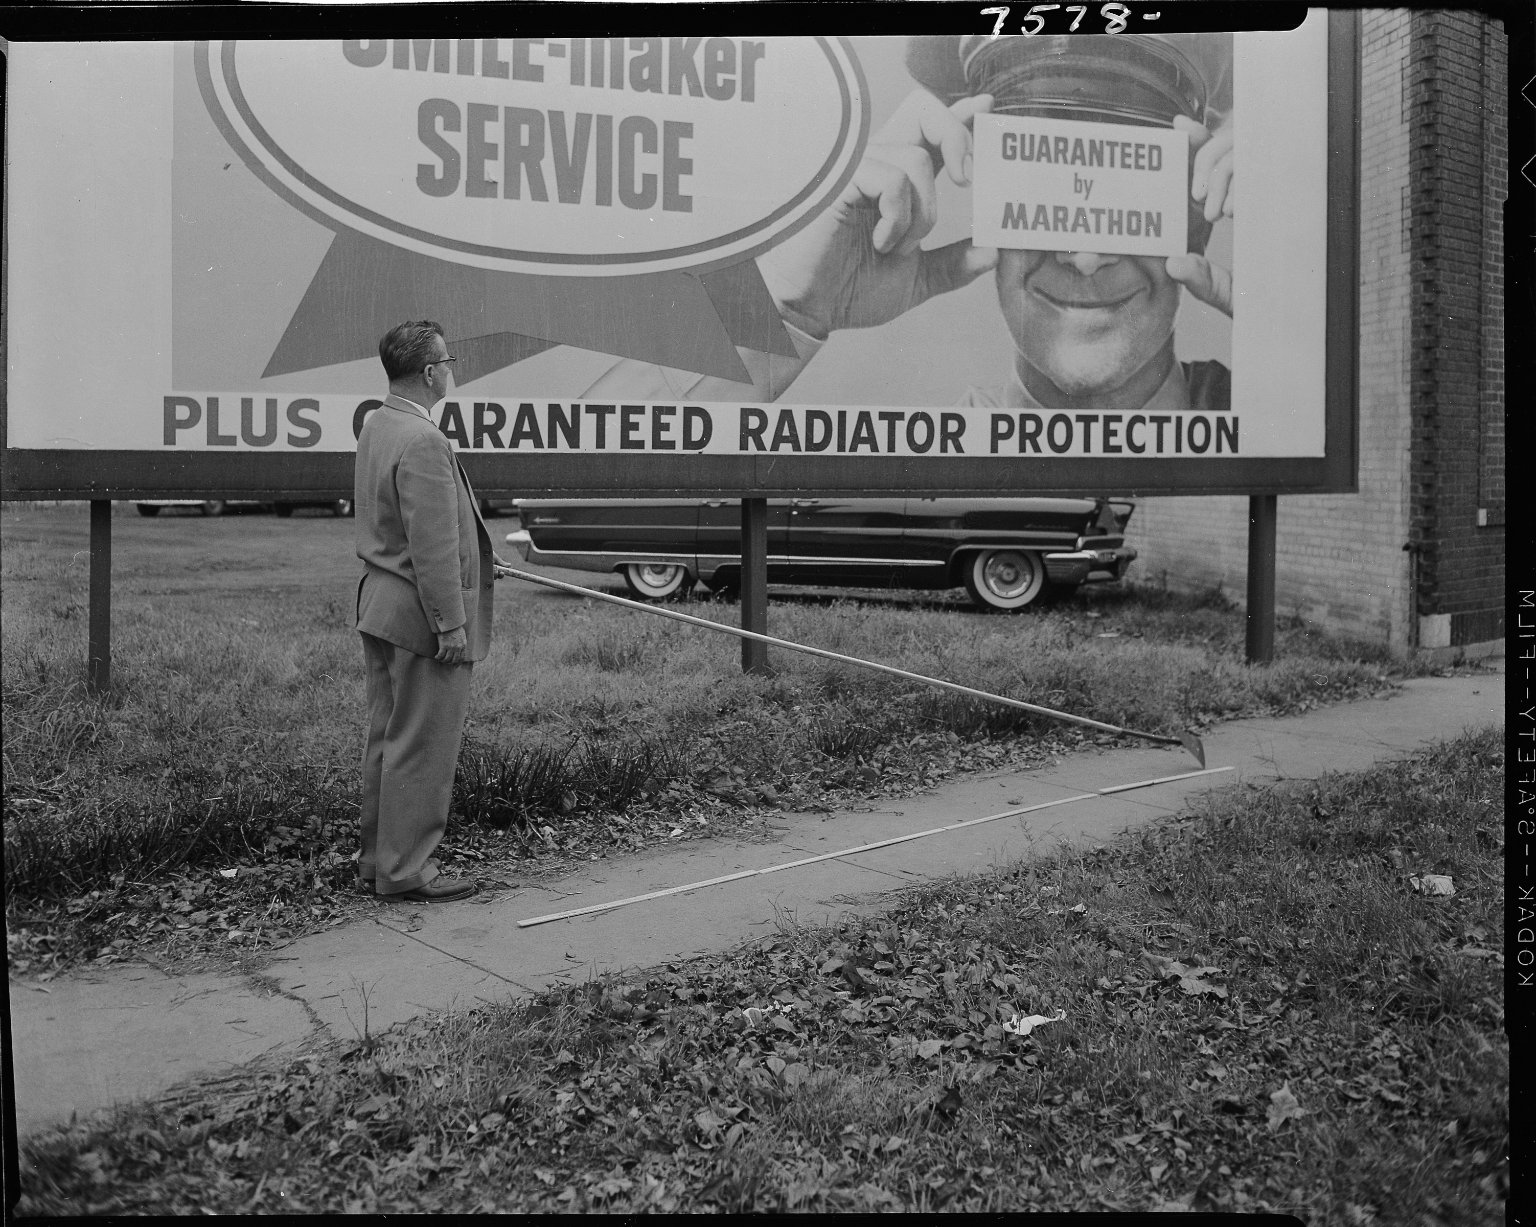 Man holding billboard scraping tool in front of Marathon Oil billboard